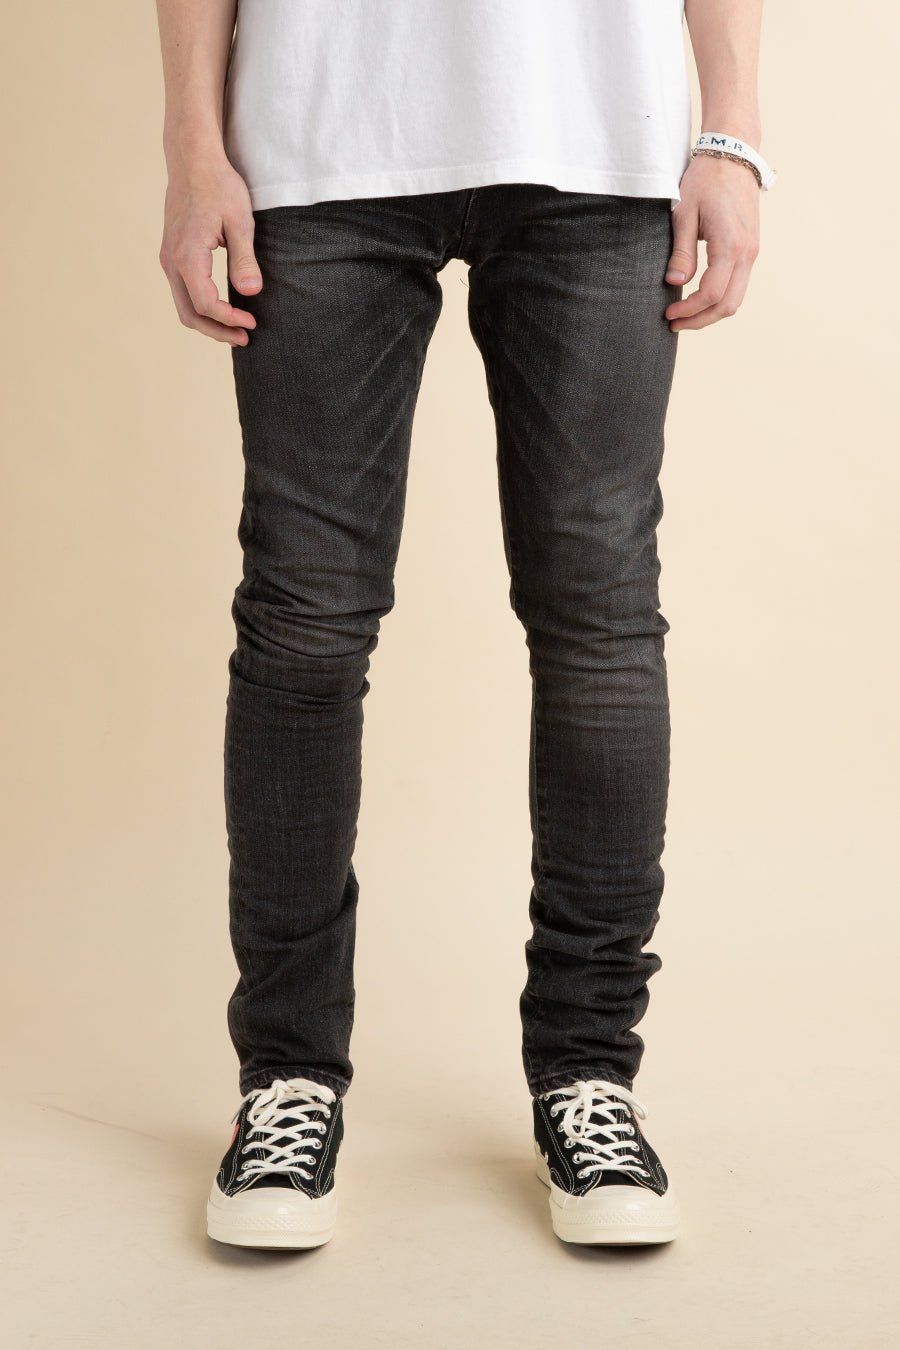 John Elliott - Black Onyx The Cast 2 Jeans